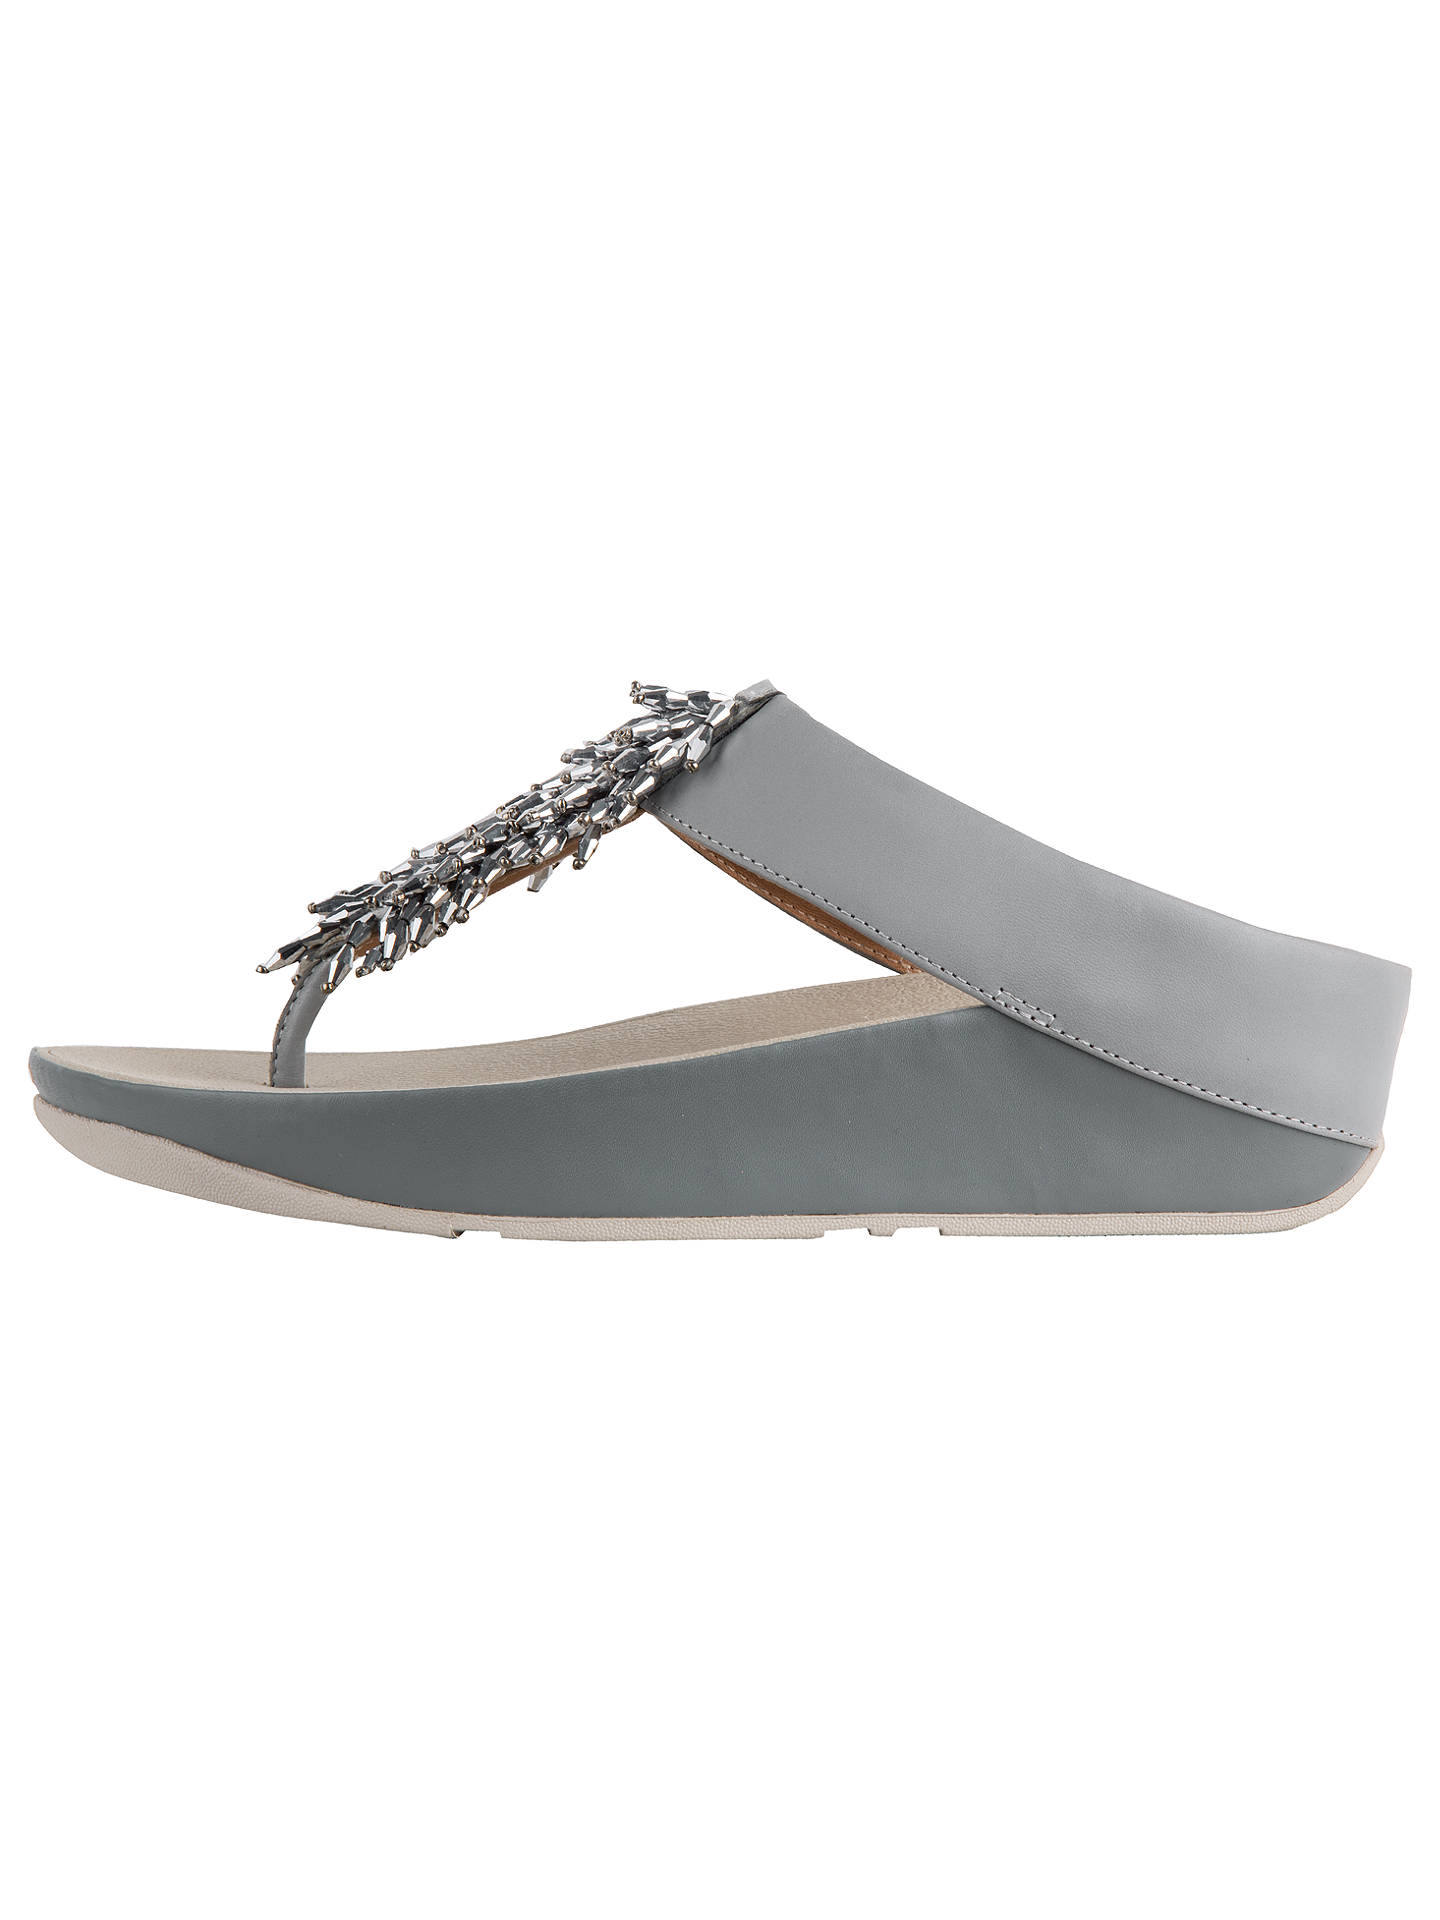 5737e868bbfb ... Buy FitFlop Rumba Embellished Toe Post Sandals